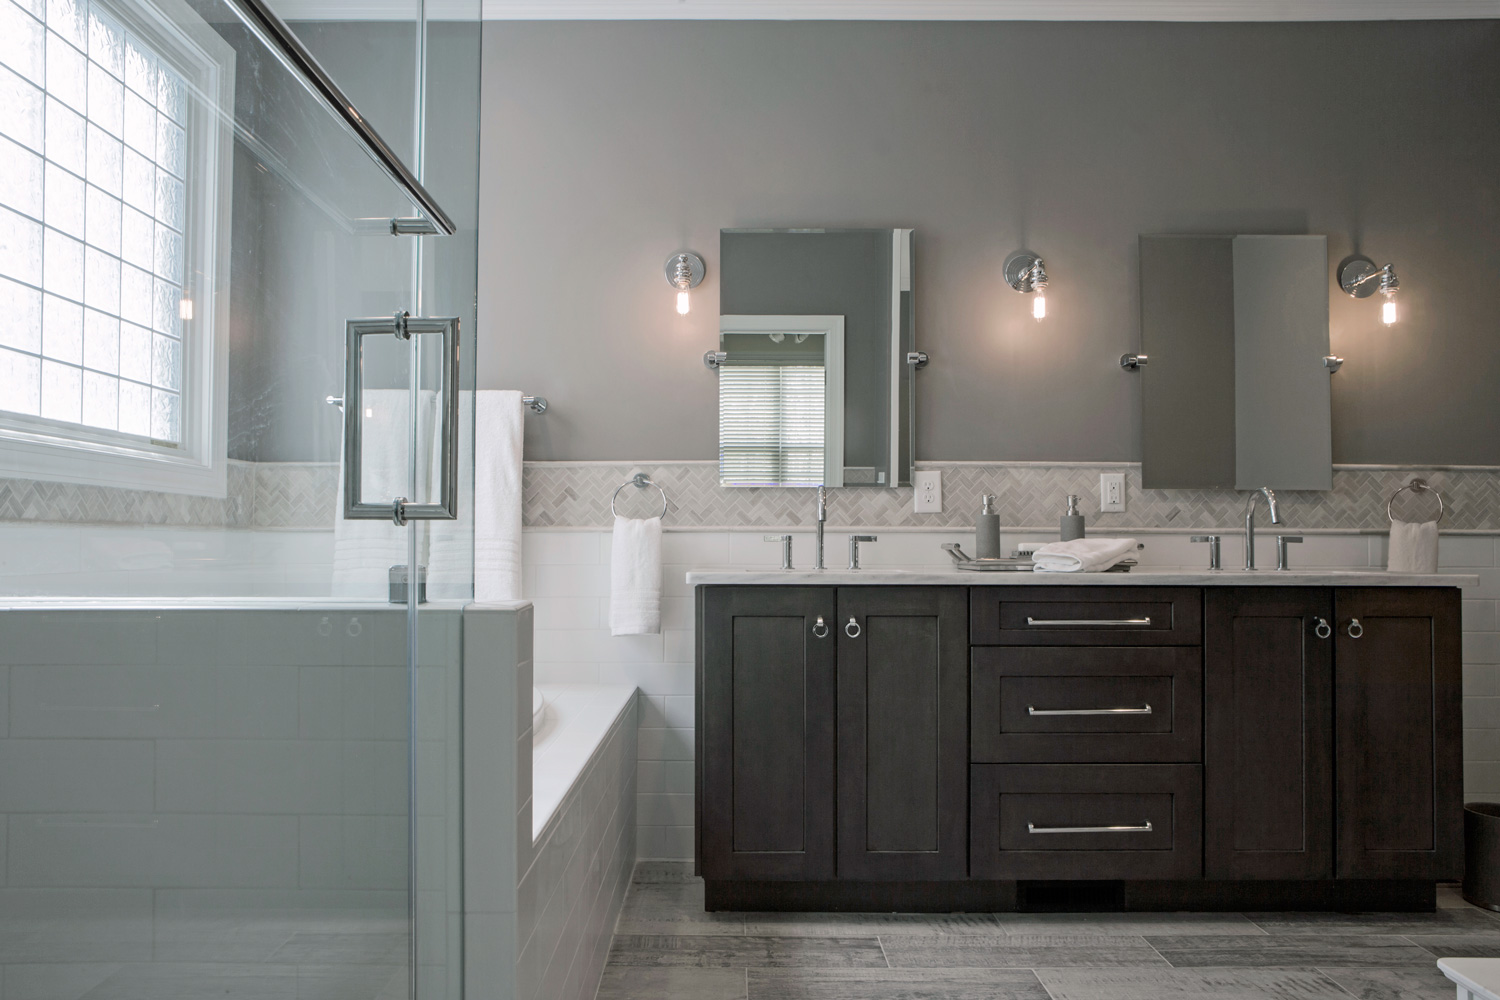 Neutral and Warm Tones are What's Trending in Bathroom Interior Design for 2015